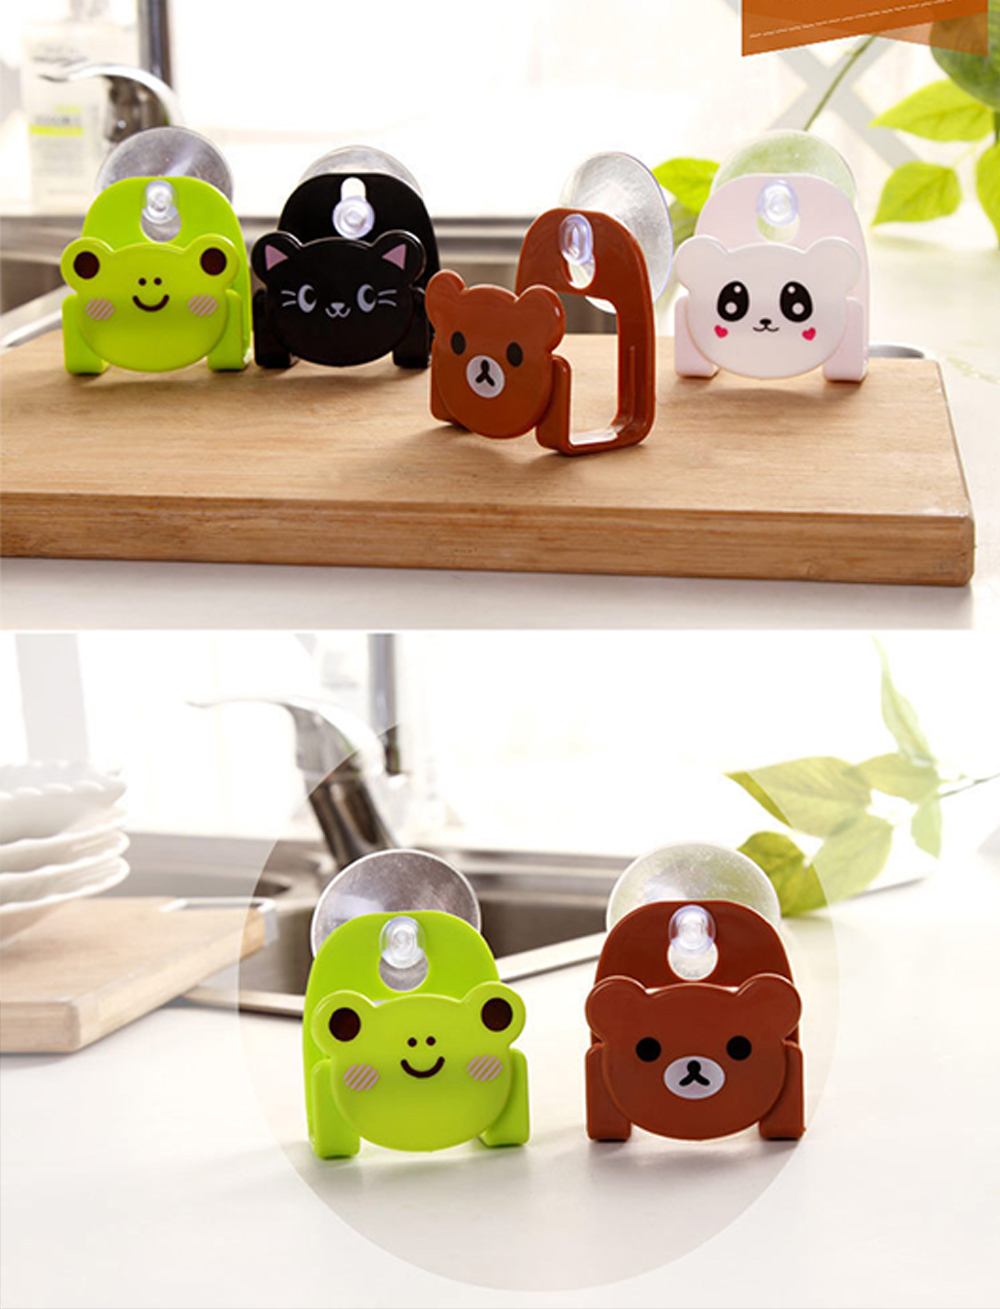 1pc Cartoon Sink Suction Cup Storage Rack Sponge Holder Clip Rag Storage Rack Kitchen Bathroom Multi-Purpose Hooks